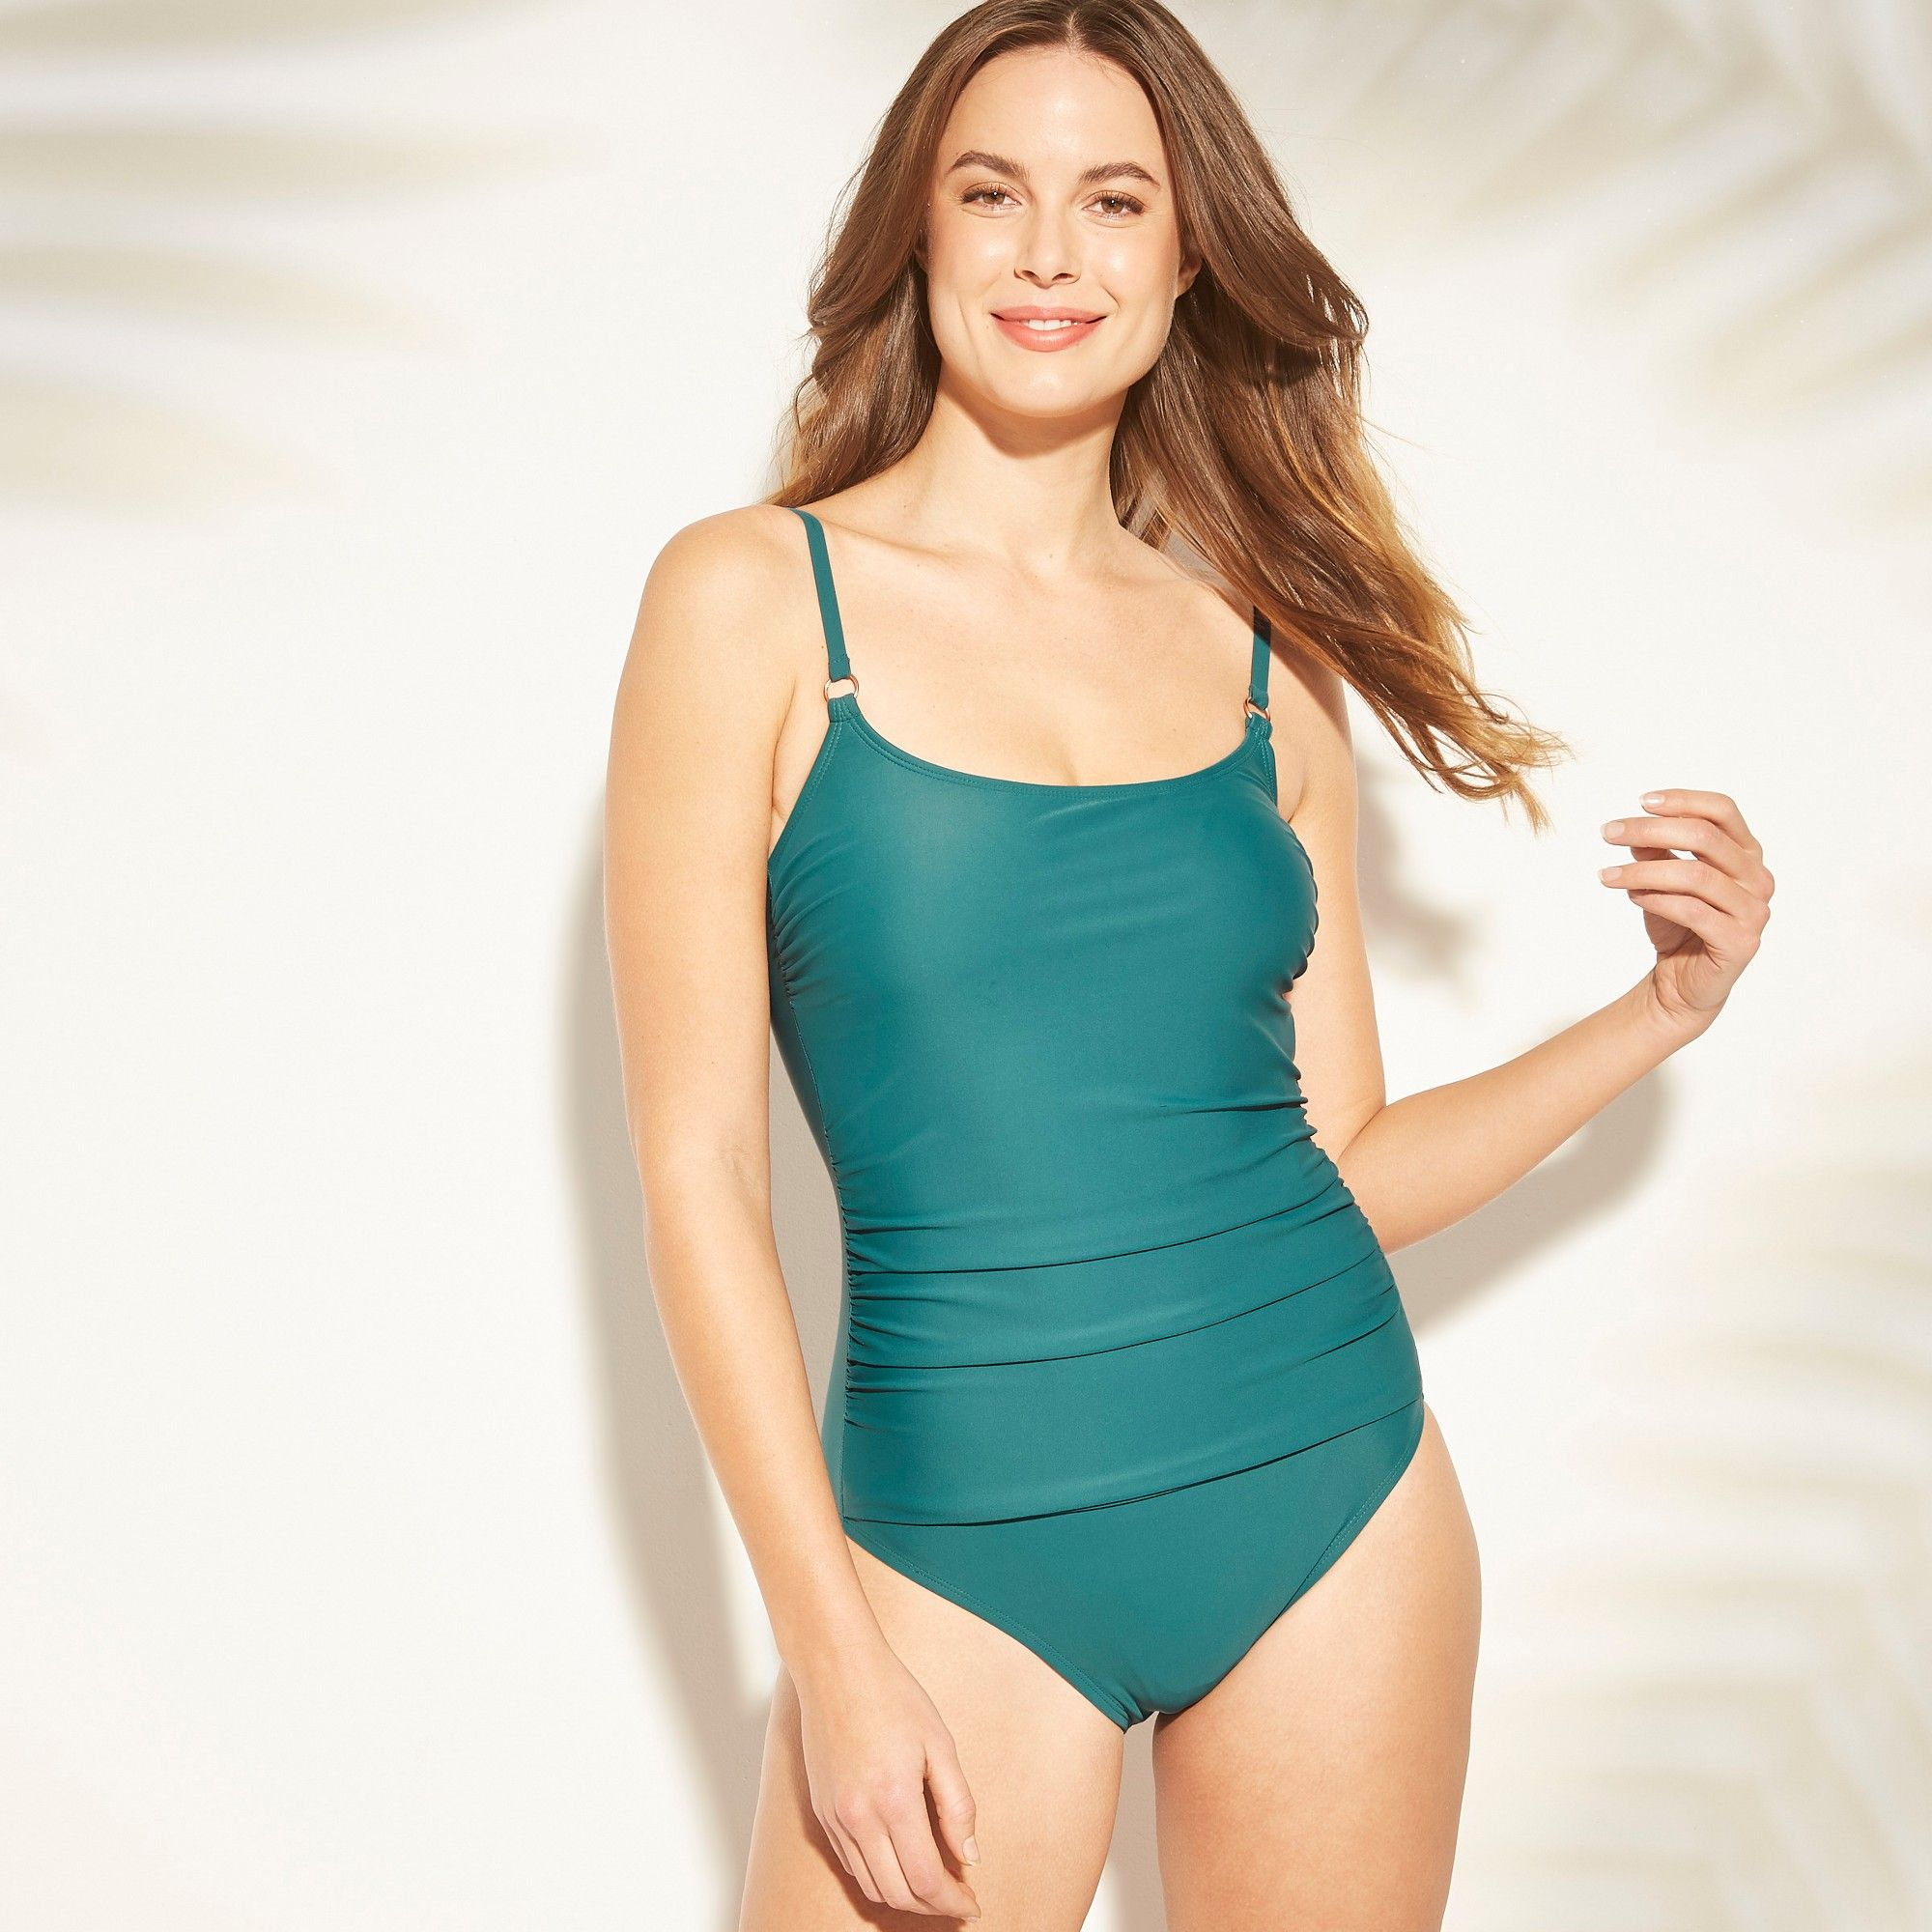 11ae5d84e02 Women's Shirred Strappy Back One Piece Swimsuit - Kona Sol Teal (Blue) XL